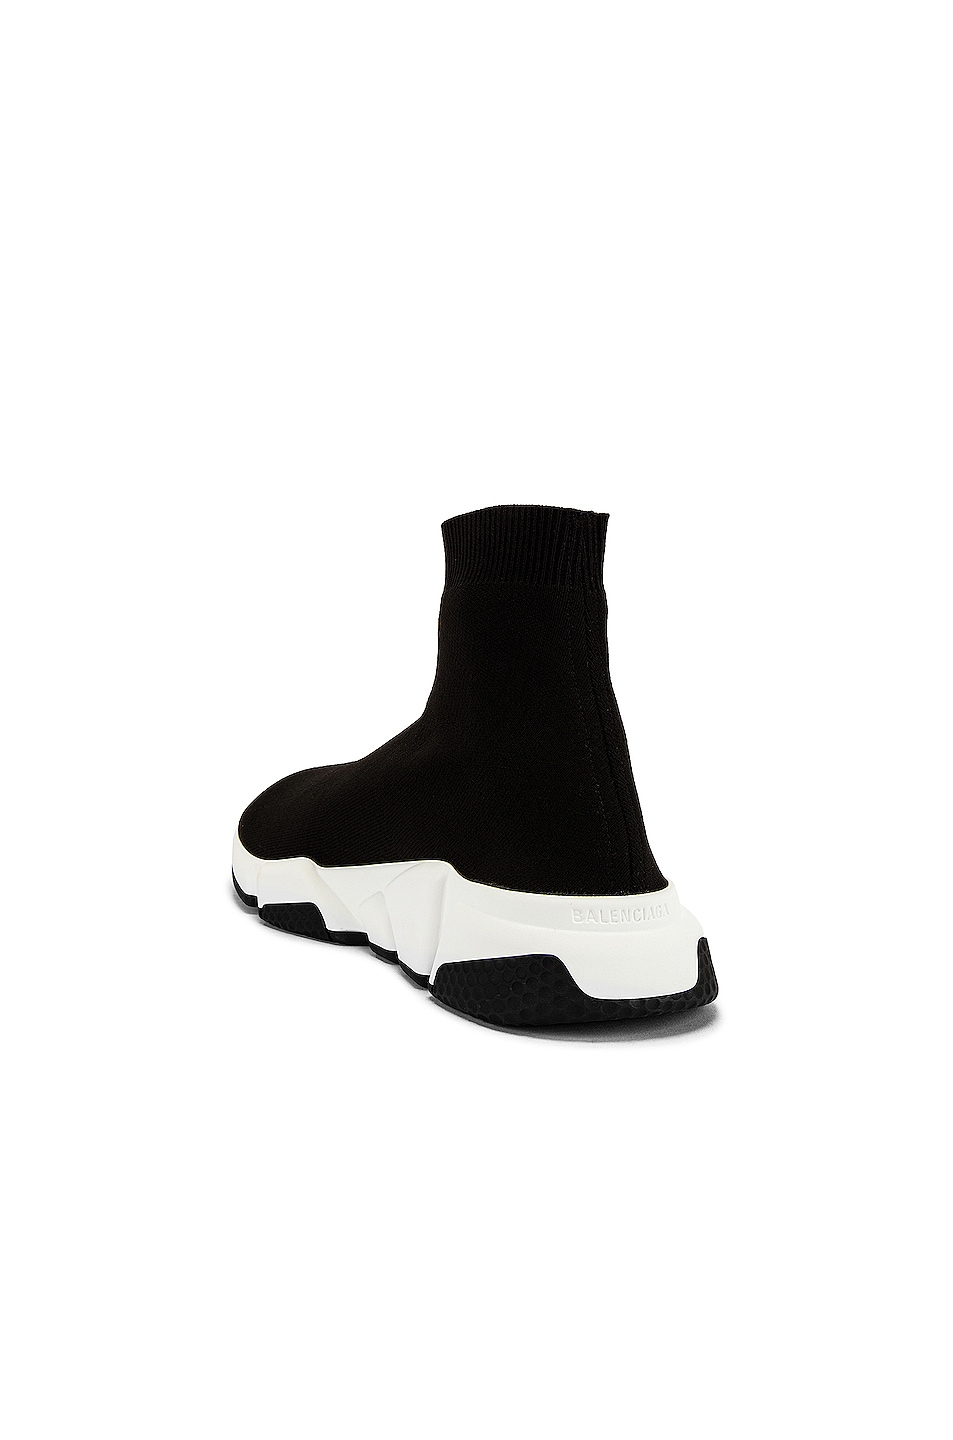 Image 3 of Balenciaga Speed Light Knit Sneaker in Black & White